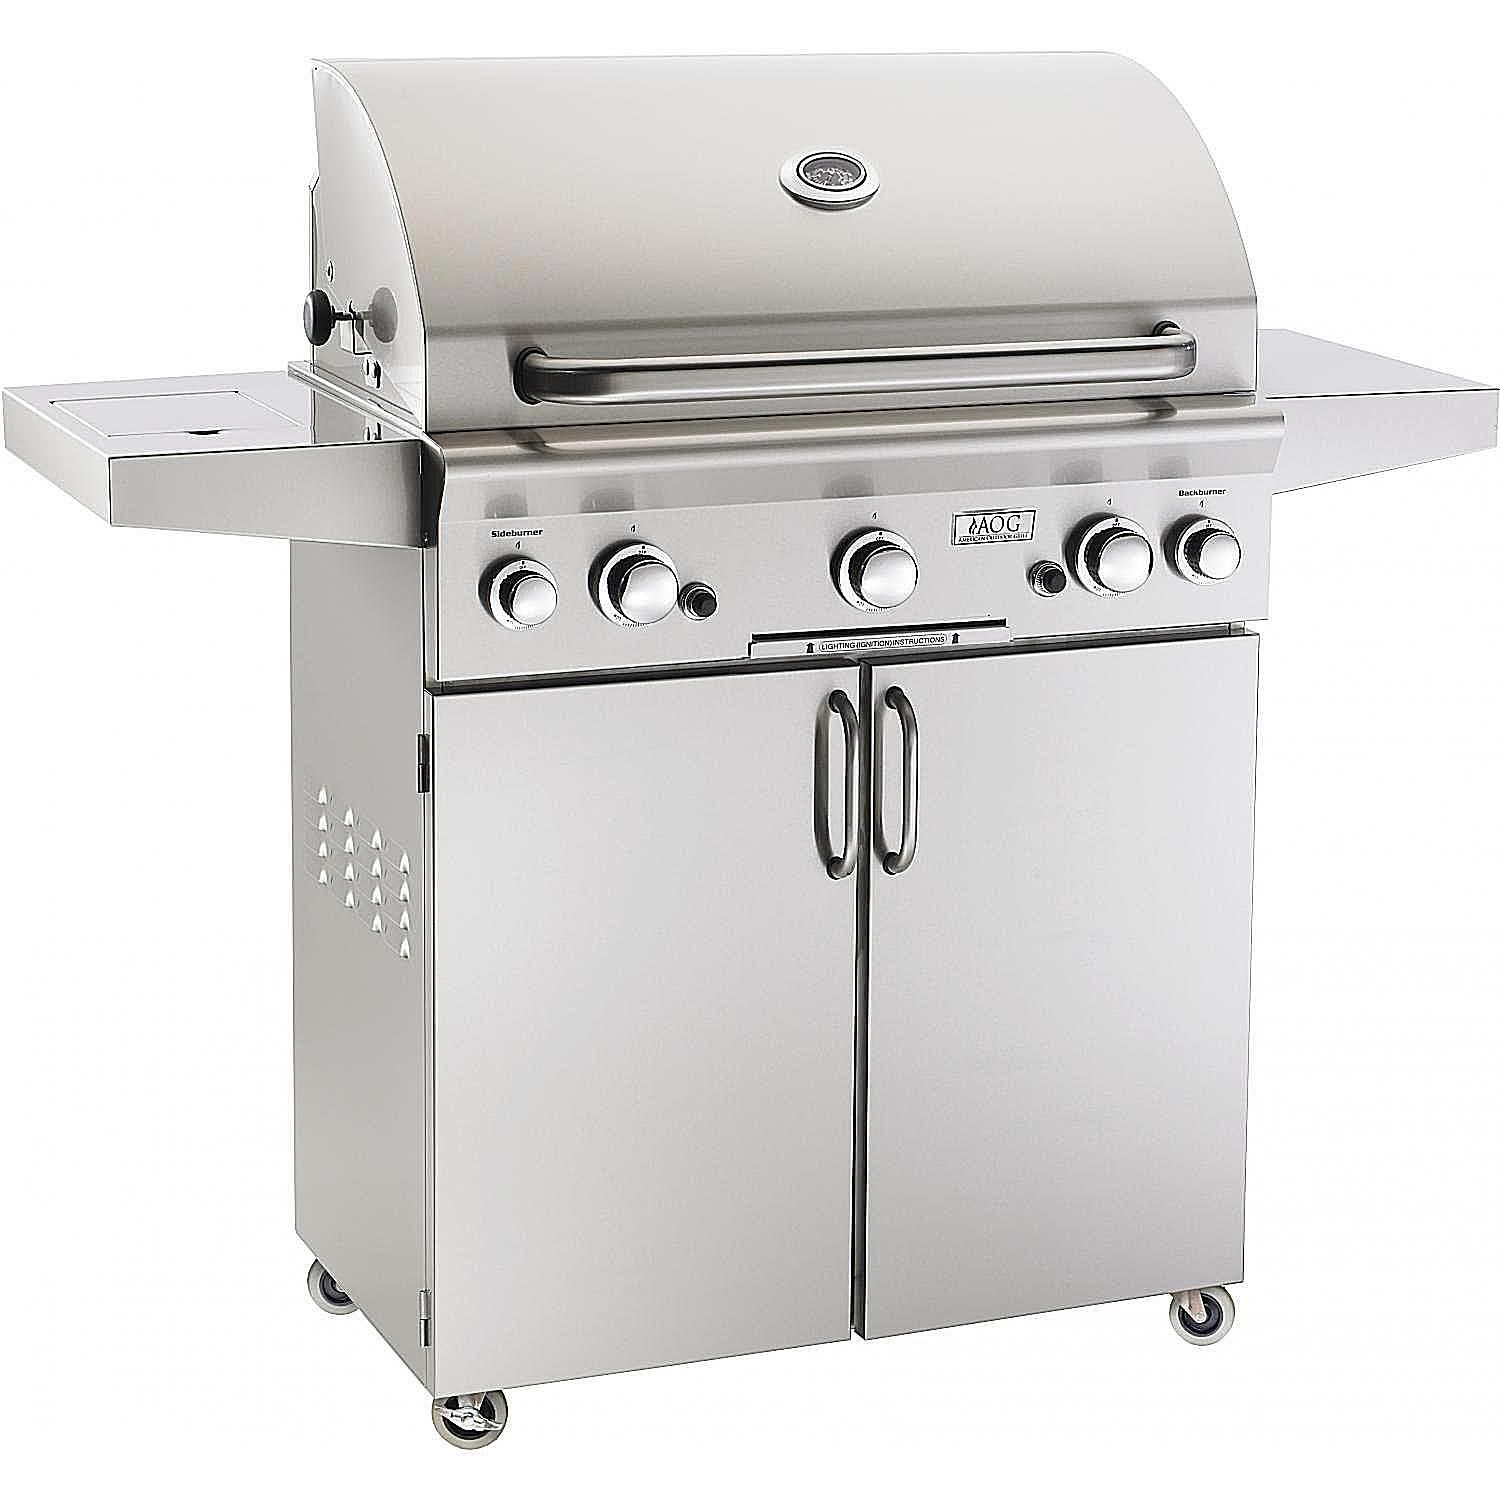 Master forge 5 burner island grill reviews - American Outdoor Grill 30 Inch Model 30pct